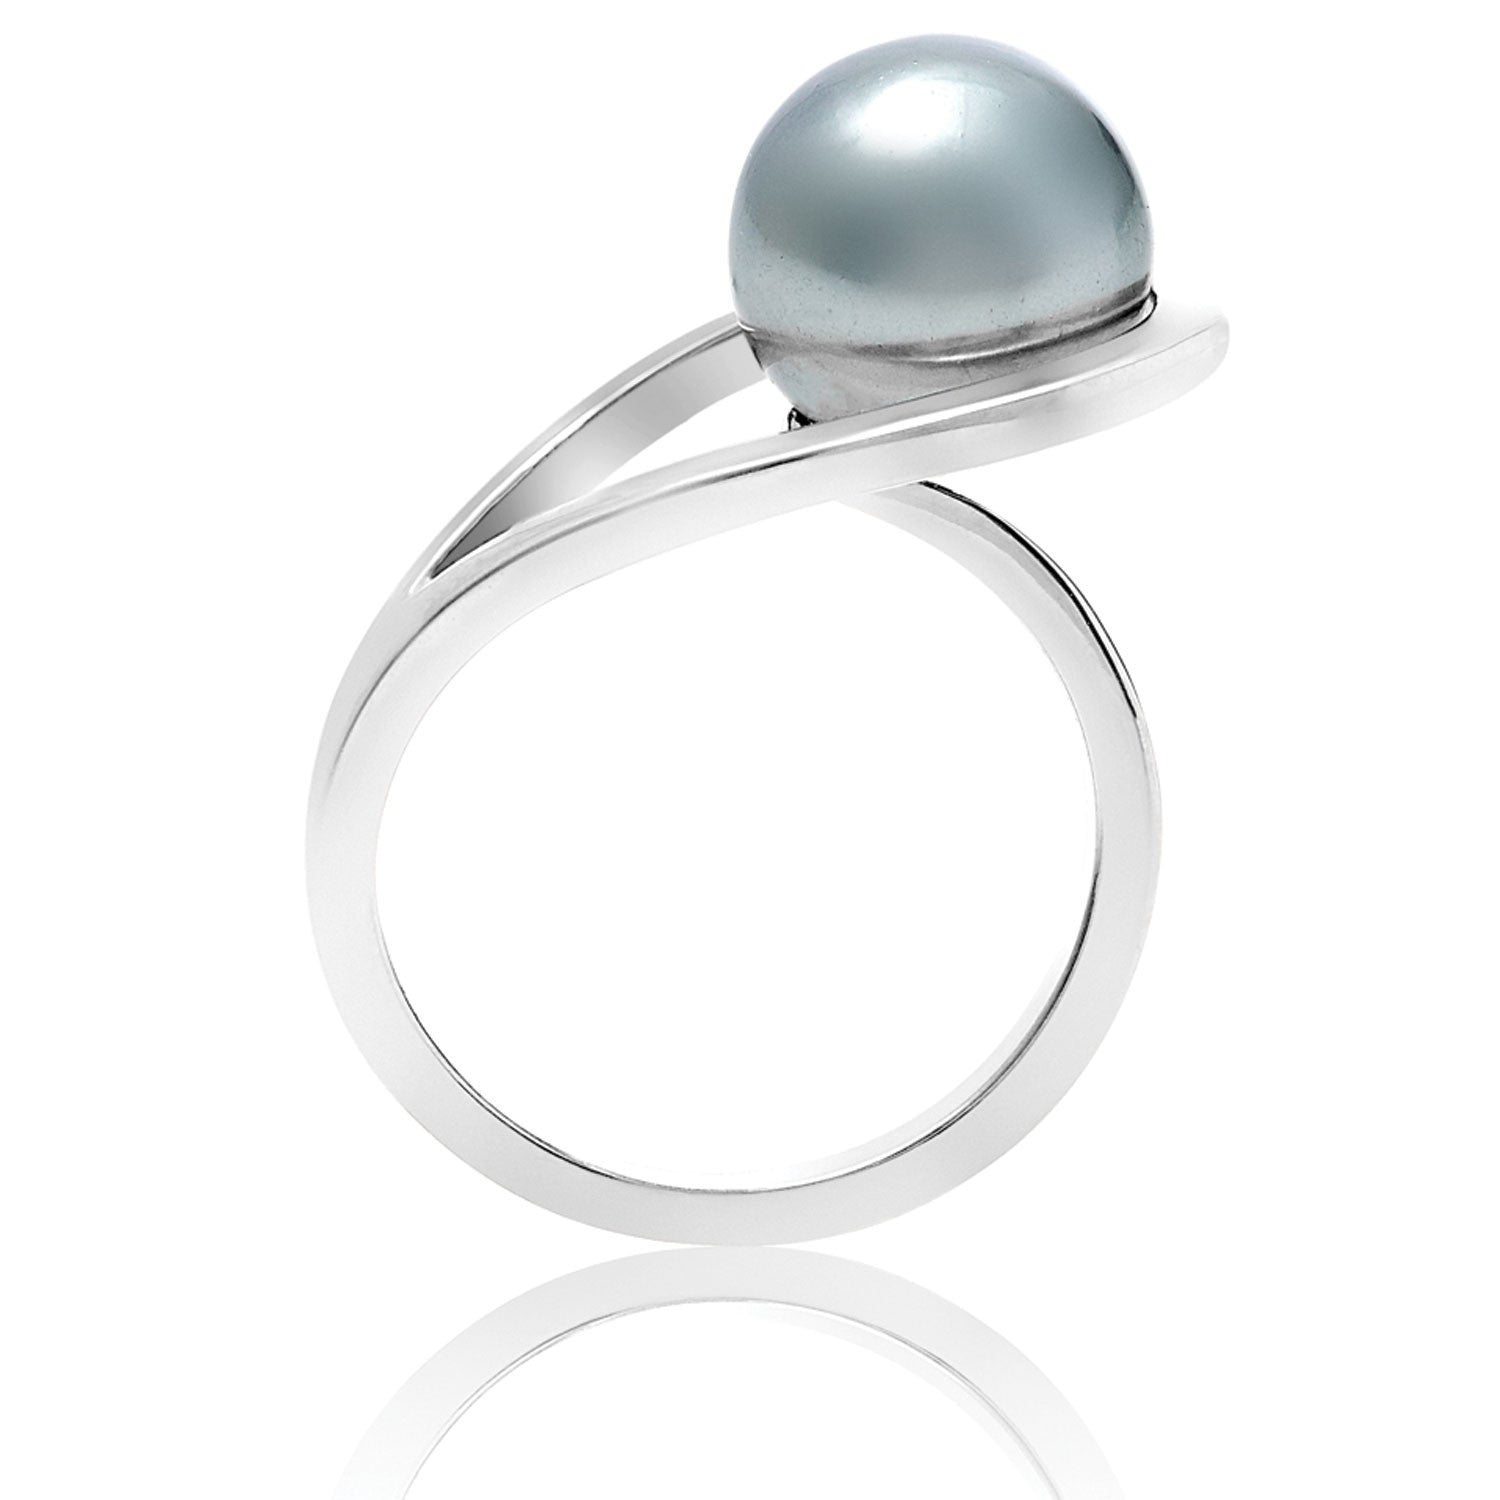 gold morning rings freshwater cultured gallery mikimoto white pearl round lyst dew jewelry product south sea diamond black ring engagement